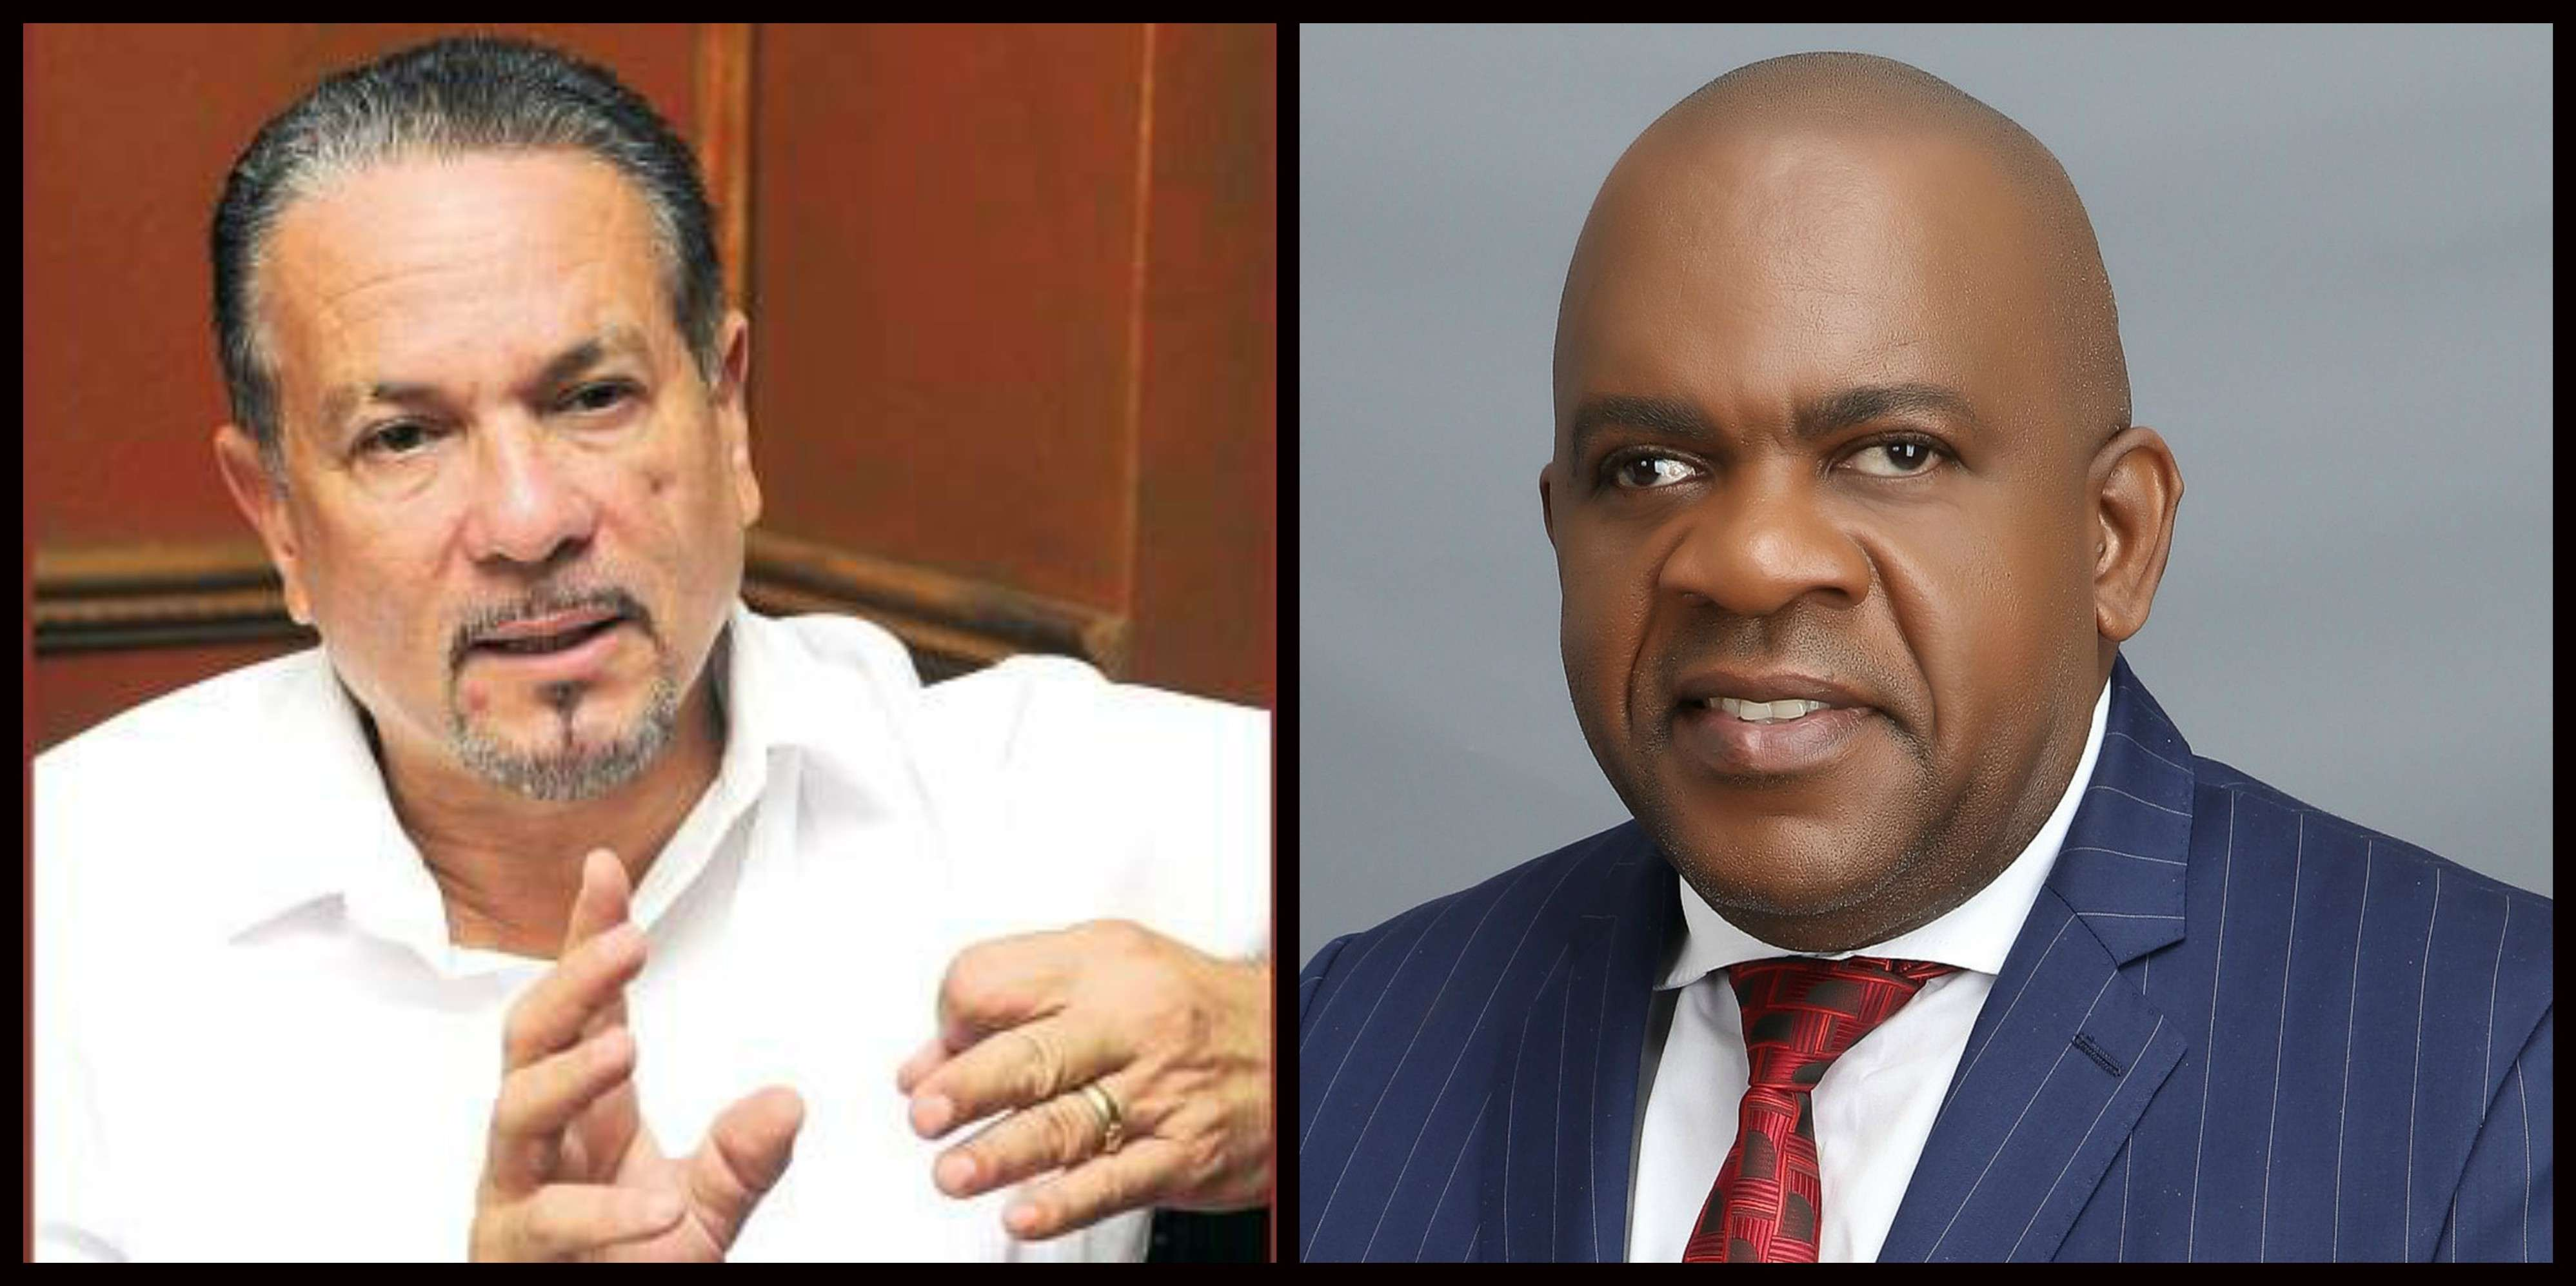 Morris Chides Senate President After He Suggests PNP Should Apologize For 1976 State Of Emergency